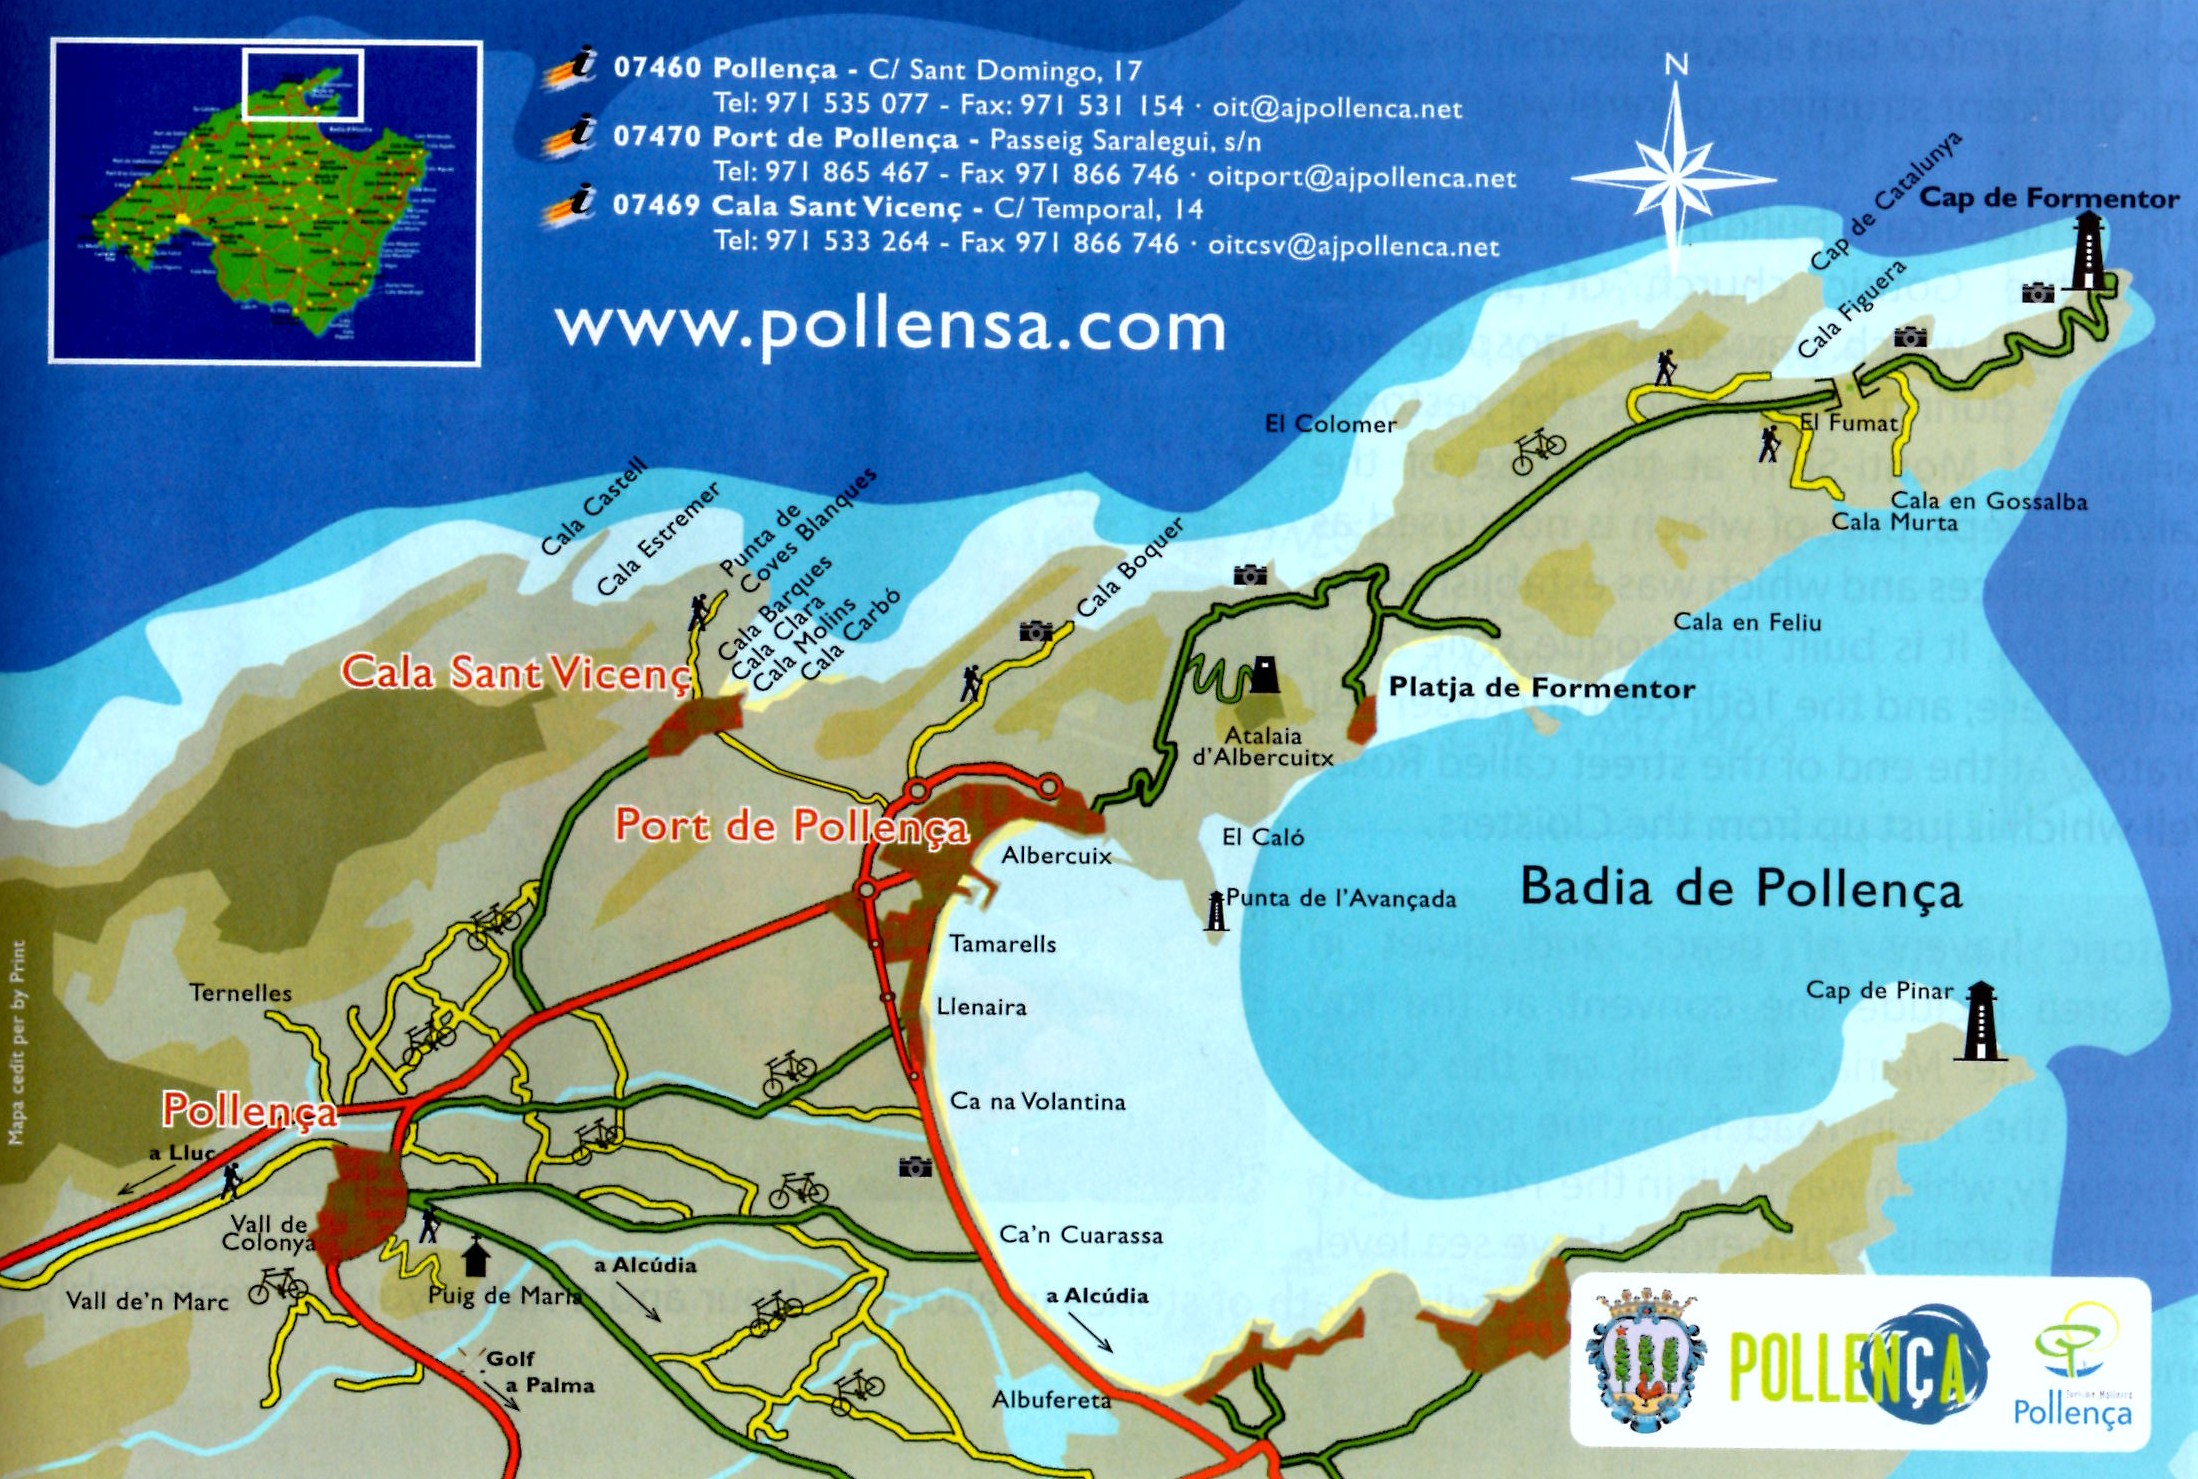 Our informative blog covers the entire area of Pollensa""